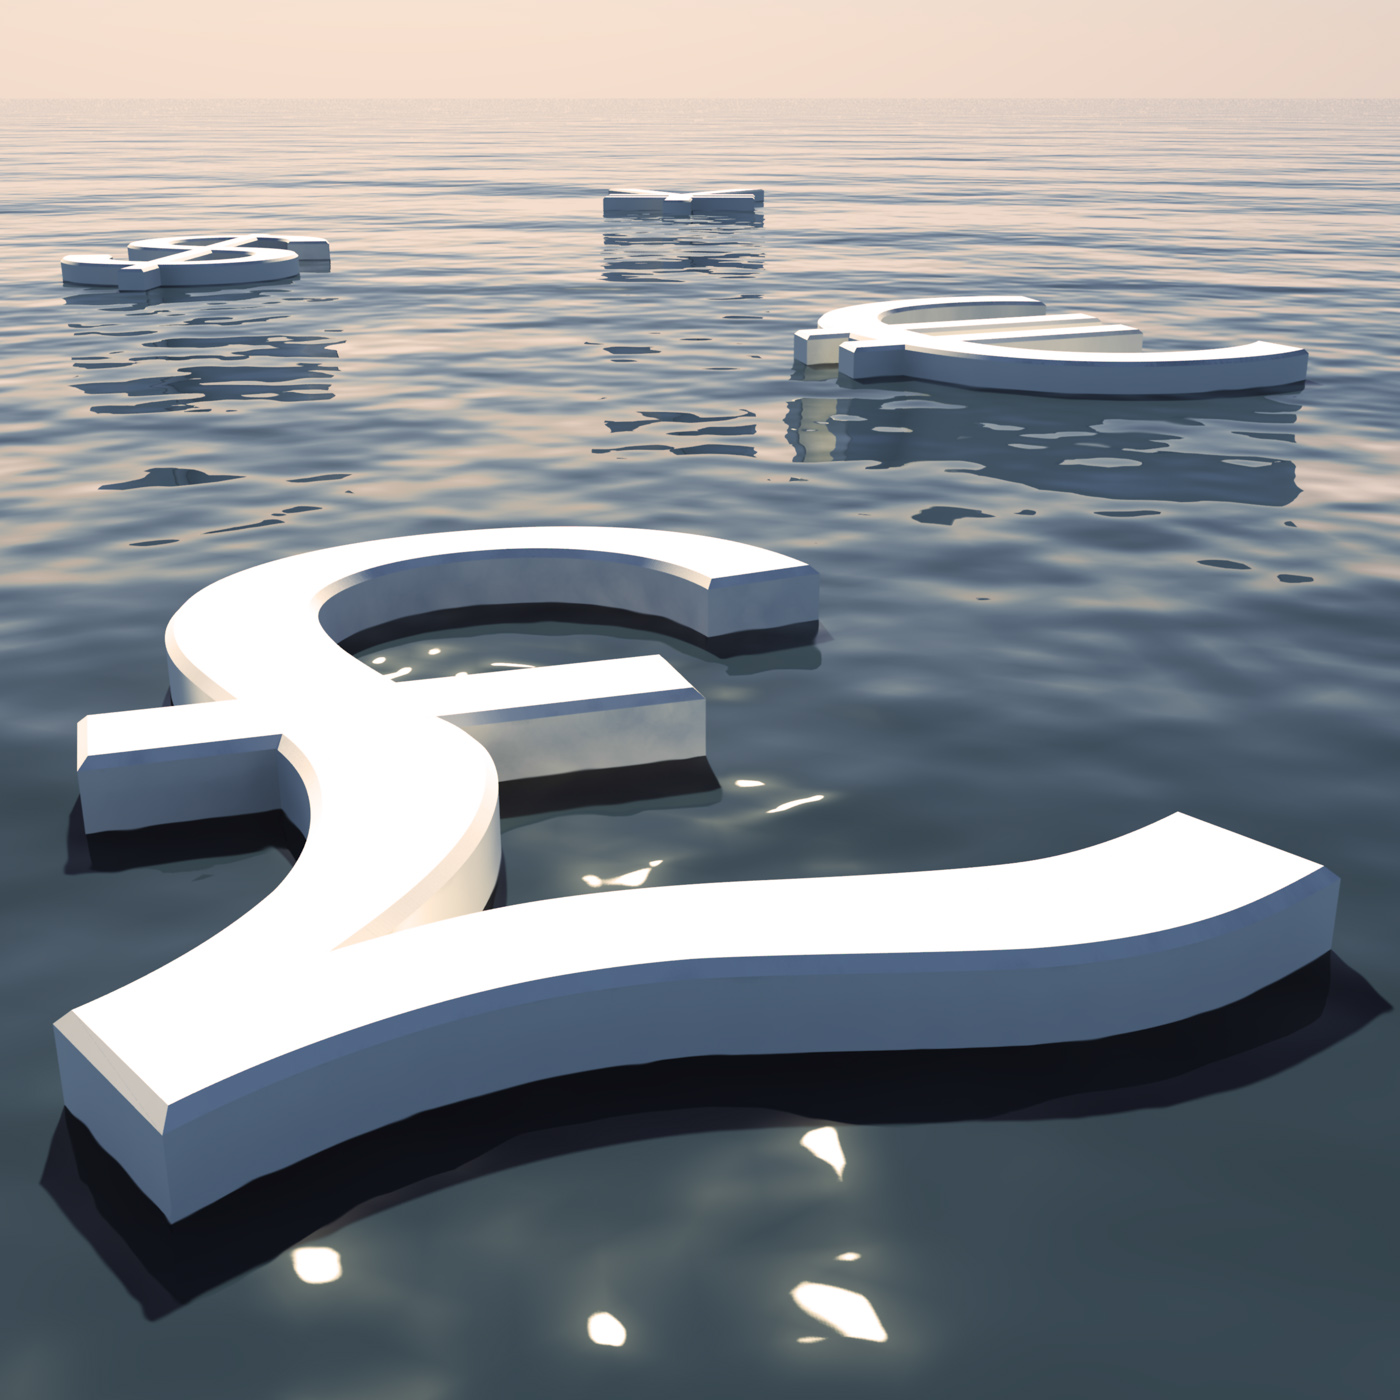 Pound Floating And Currencies